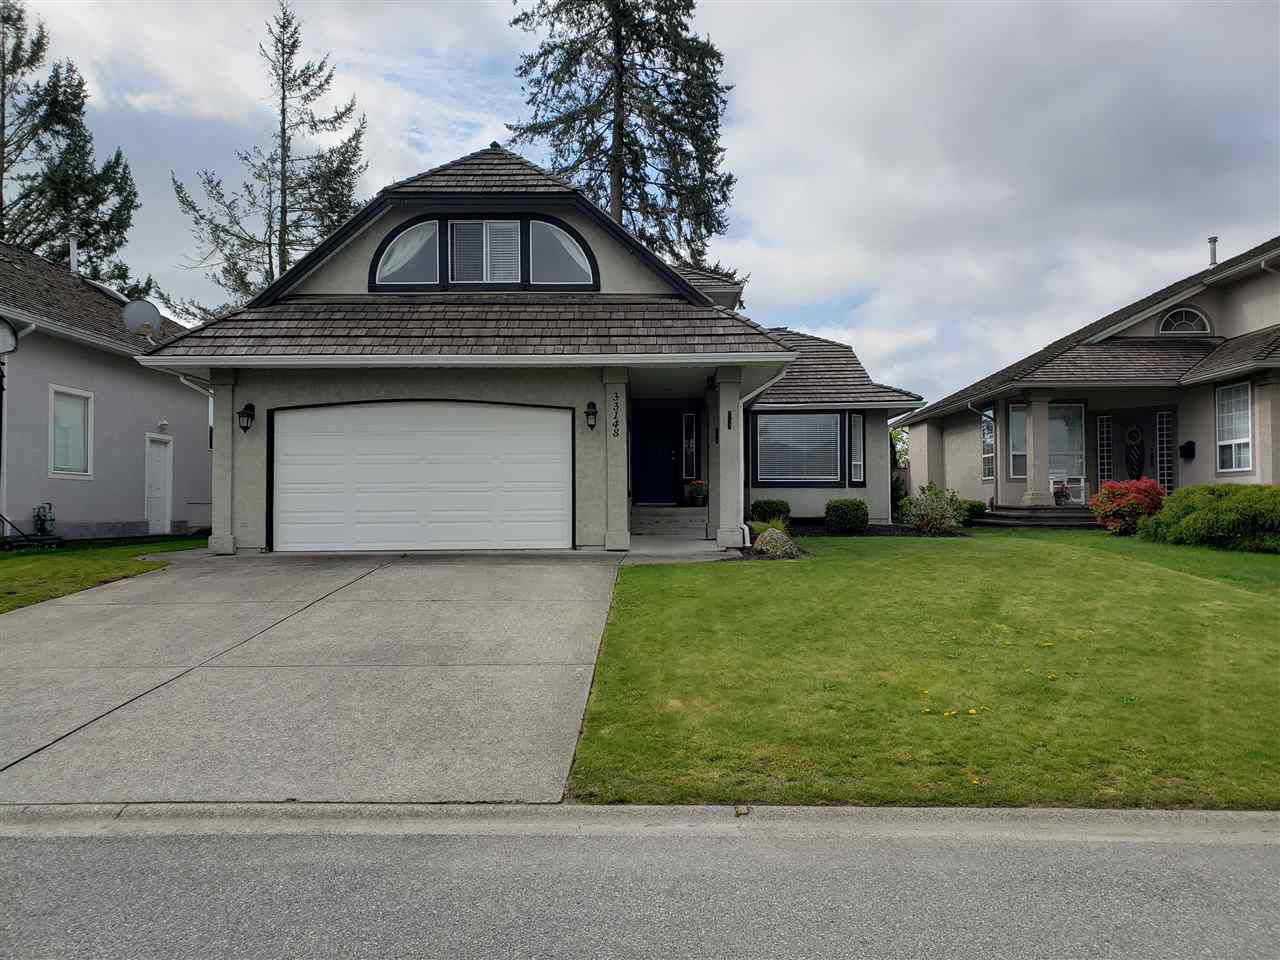 Main Photo: 33148 HAWTHORNE Avenue in Mission: Mission BC House for sale : MLS®# R2363101